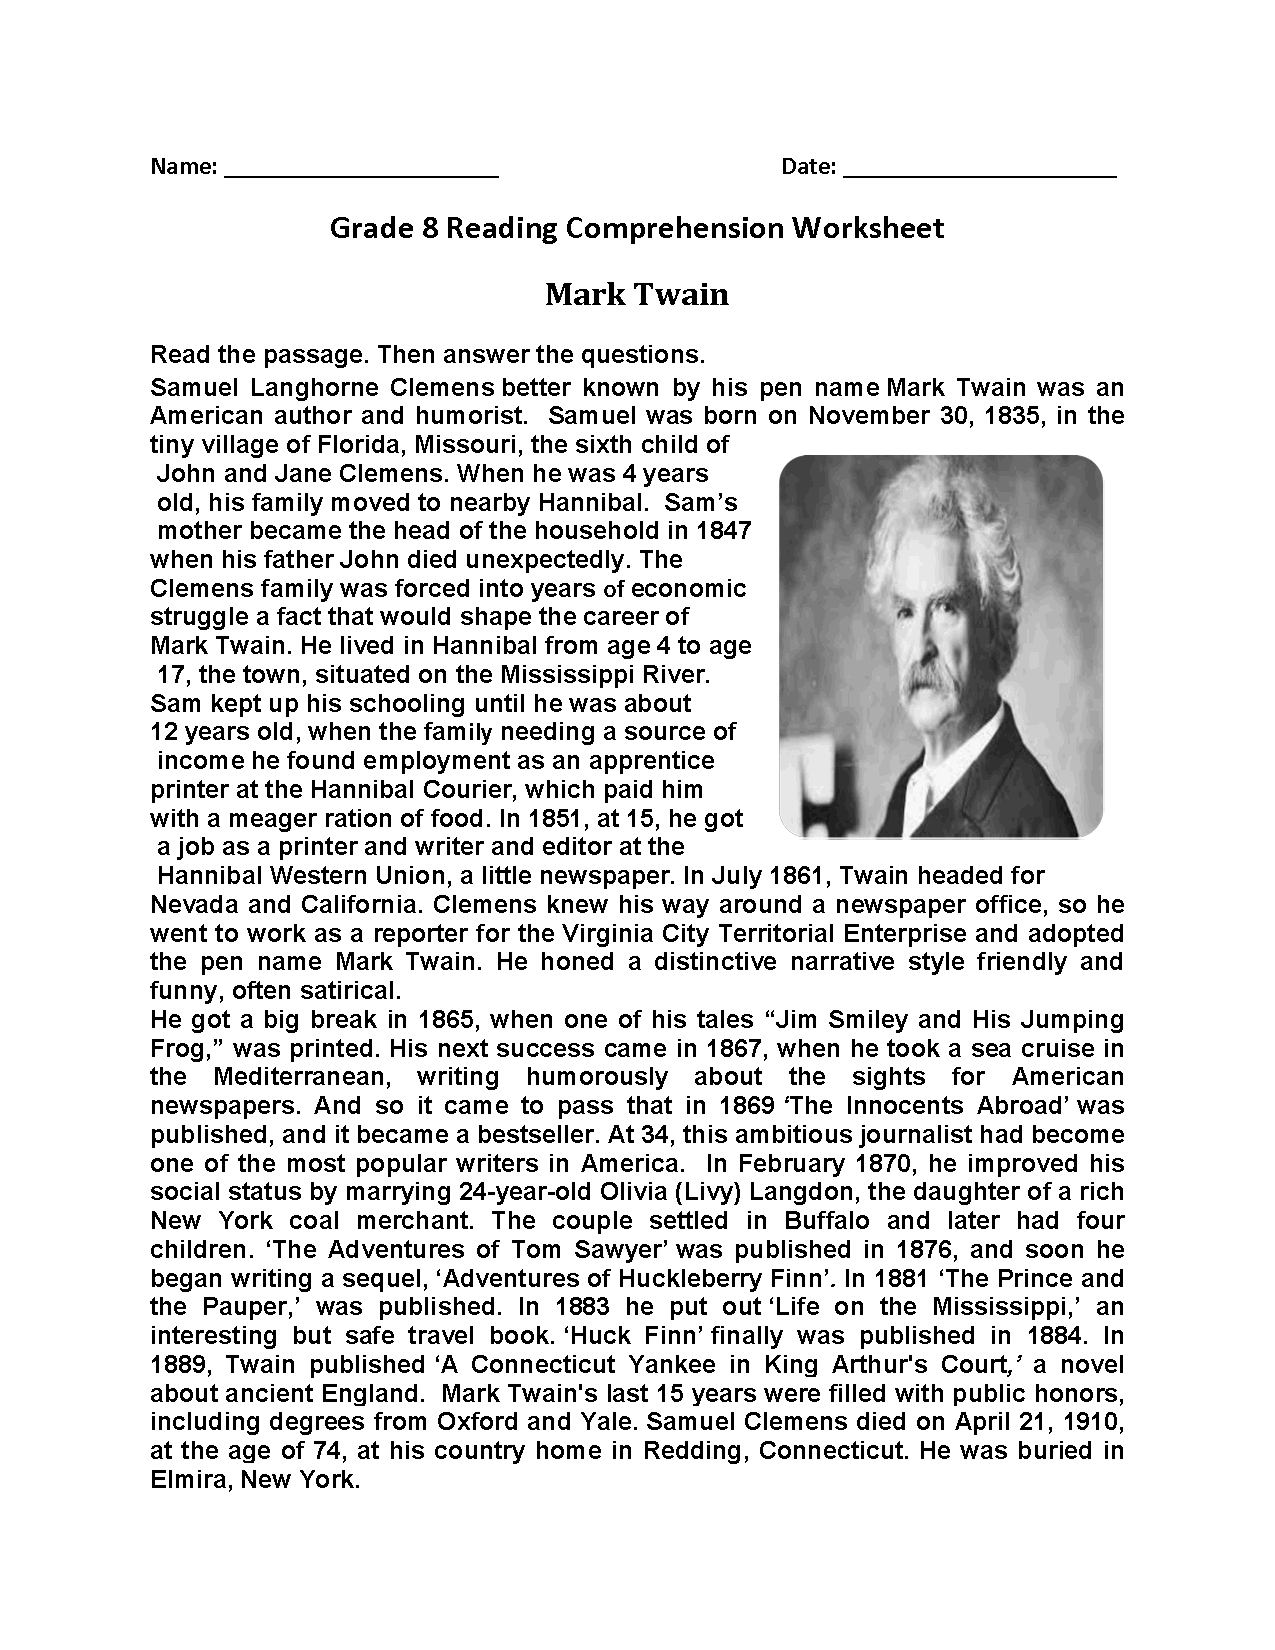 Printables Reading Worksheets For 8th Grade reading worksheets eighth grade worksheets